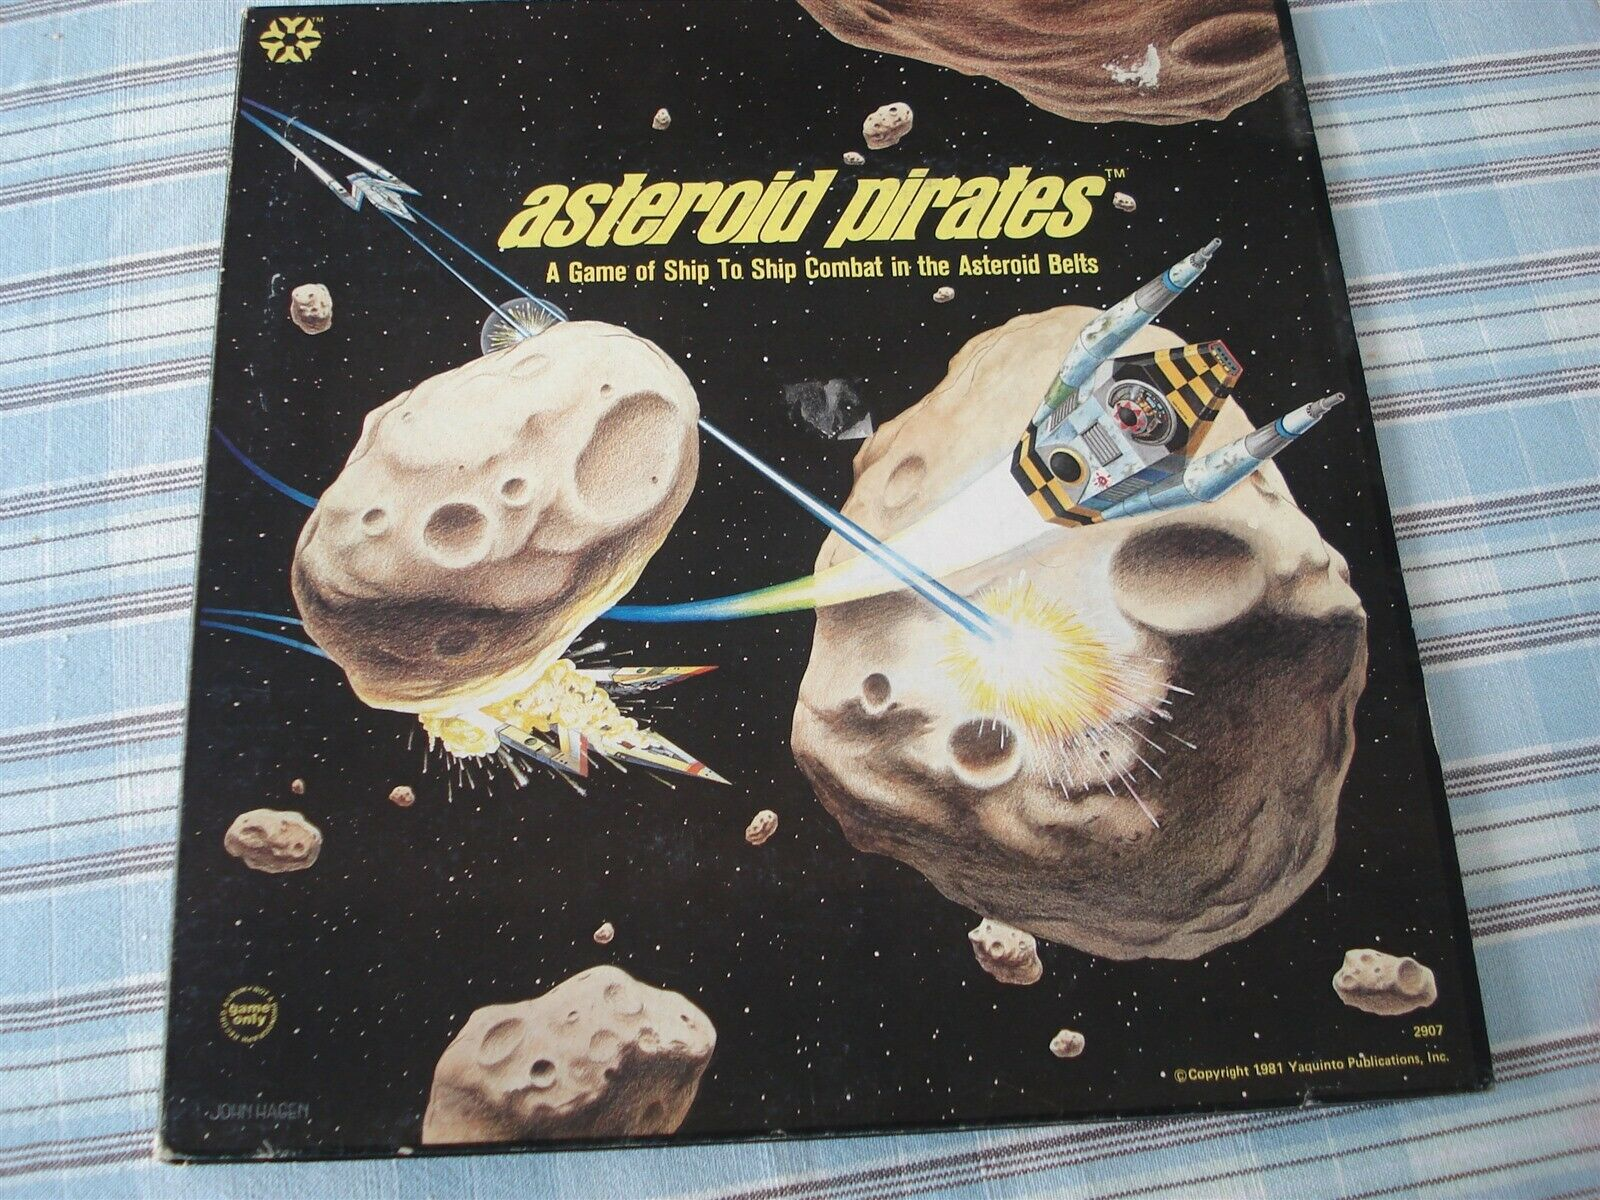 ASTEROID PIRATES GAME - ASTEROID PIRATES - 1981 - YAQUINTO - SHIP TO SHIP COMBAT